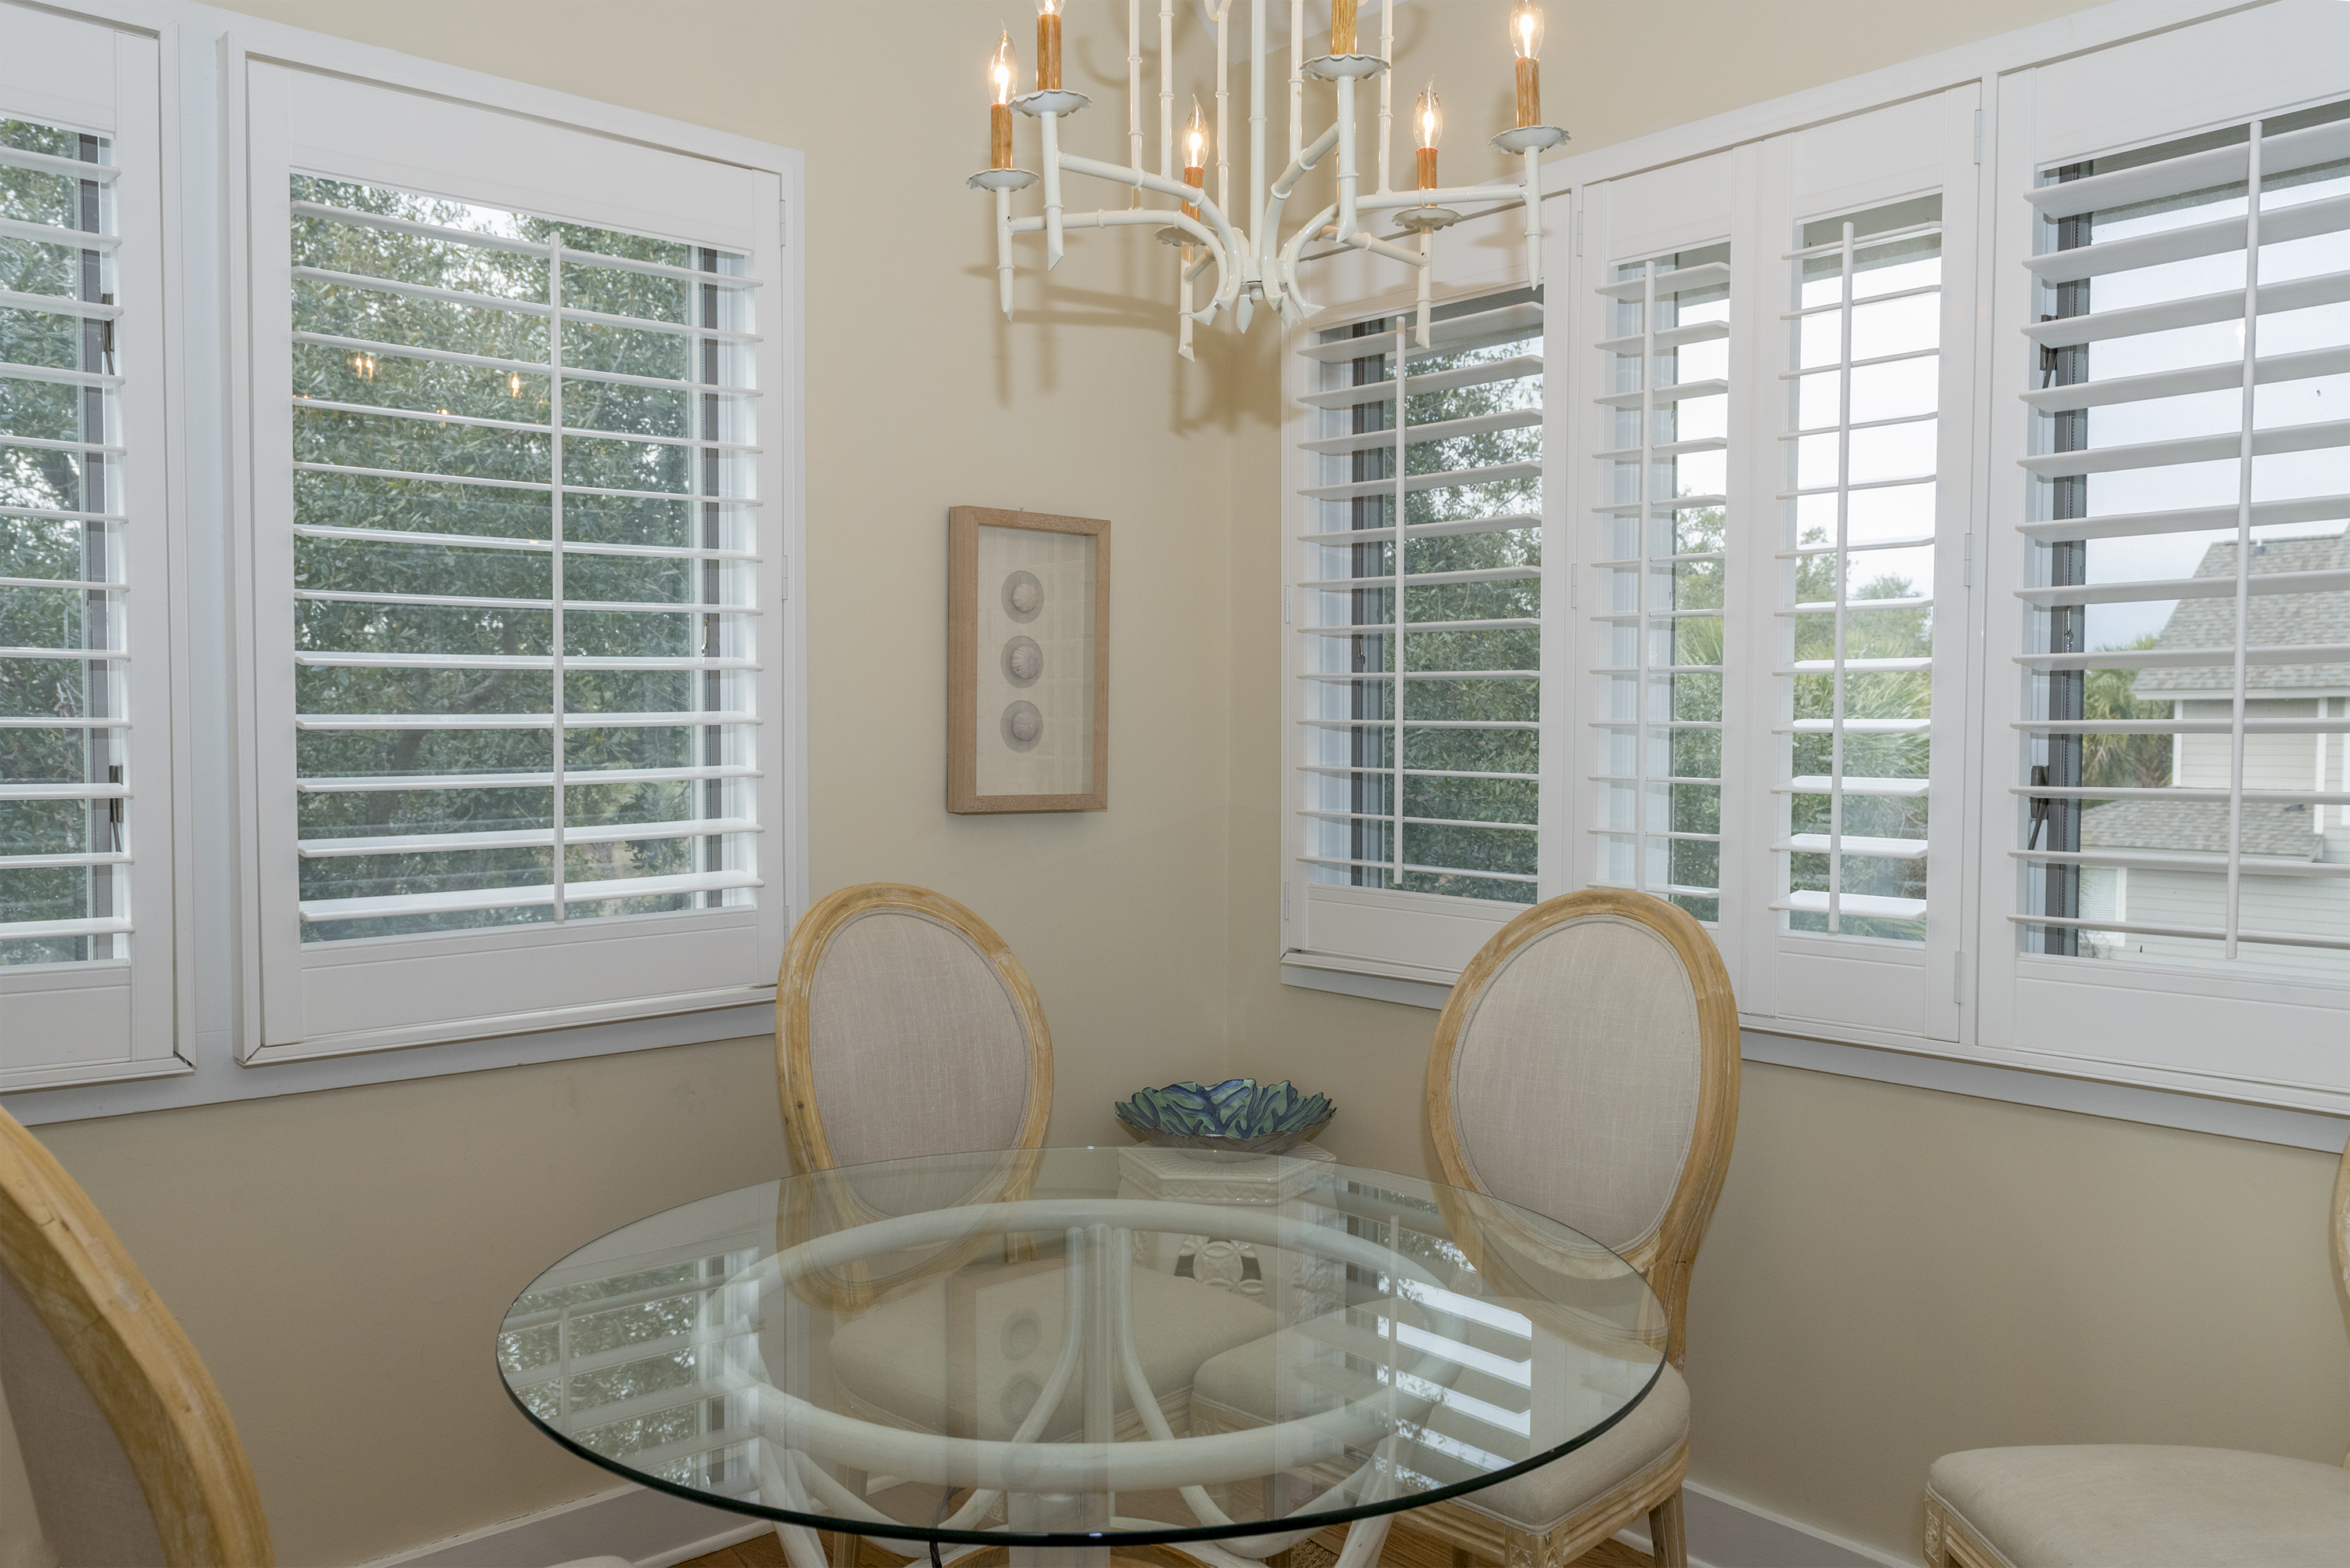 The breakfast nook in the kitchen seats 4 and windows provide plenty of natural light!